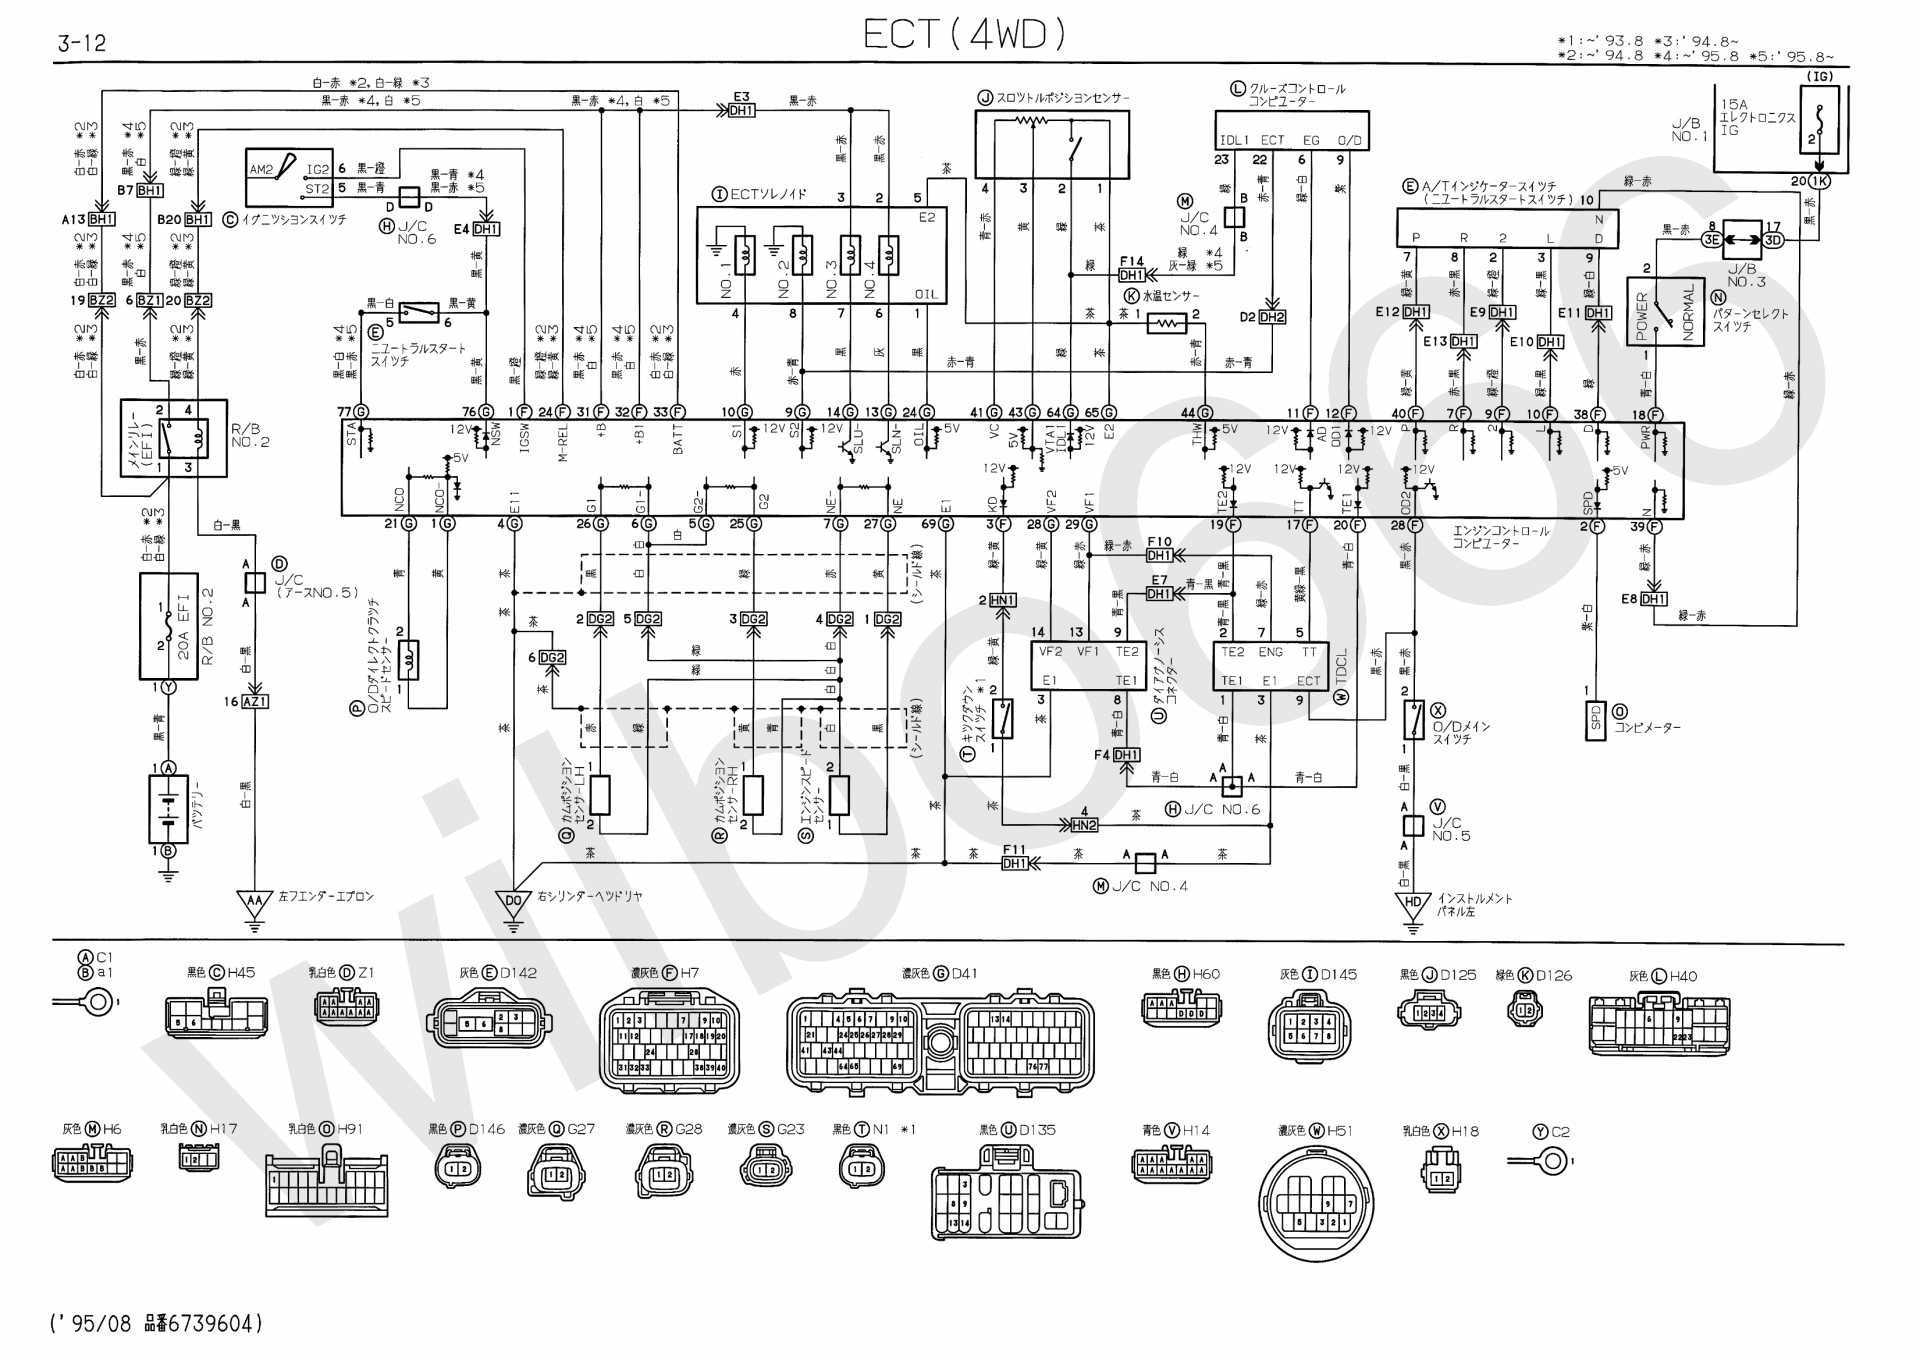 Chevy Cobalt Radio Wiring Diagram together with 2000 Chevy 4 3 Timing Marks as well Kenworth 2007 T800 Wiring Diagrams moreover Pioneer Car Stereo Connector Diagram also Toyota Corolla 2015 Parts Catalog. on cruze timing chain